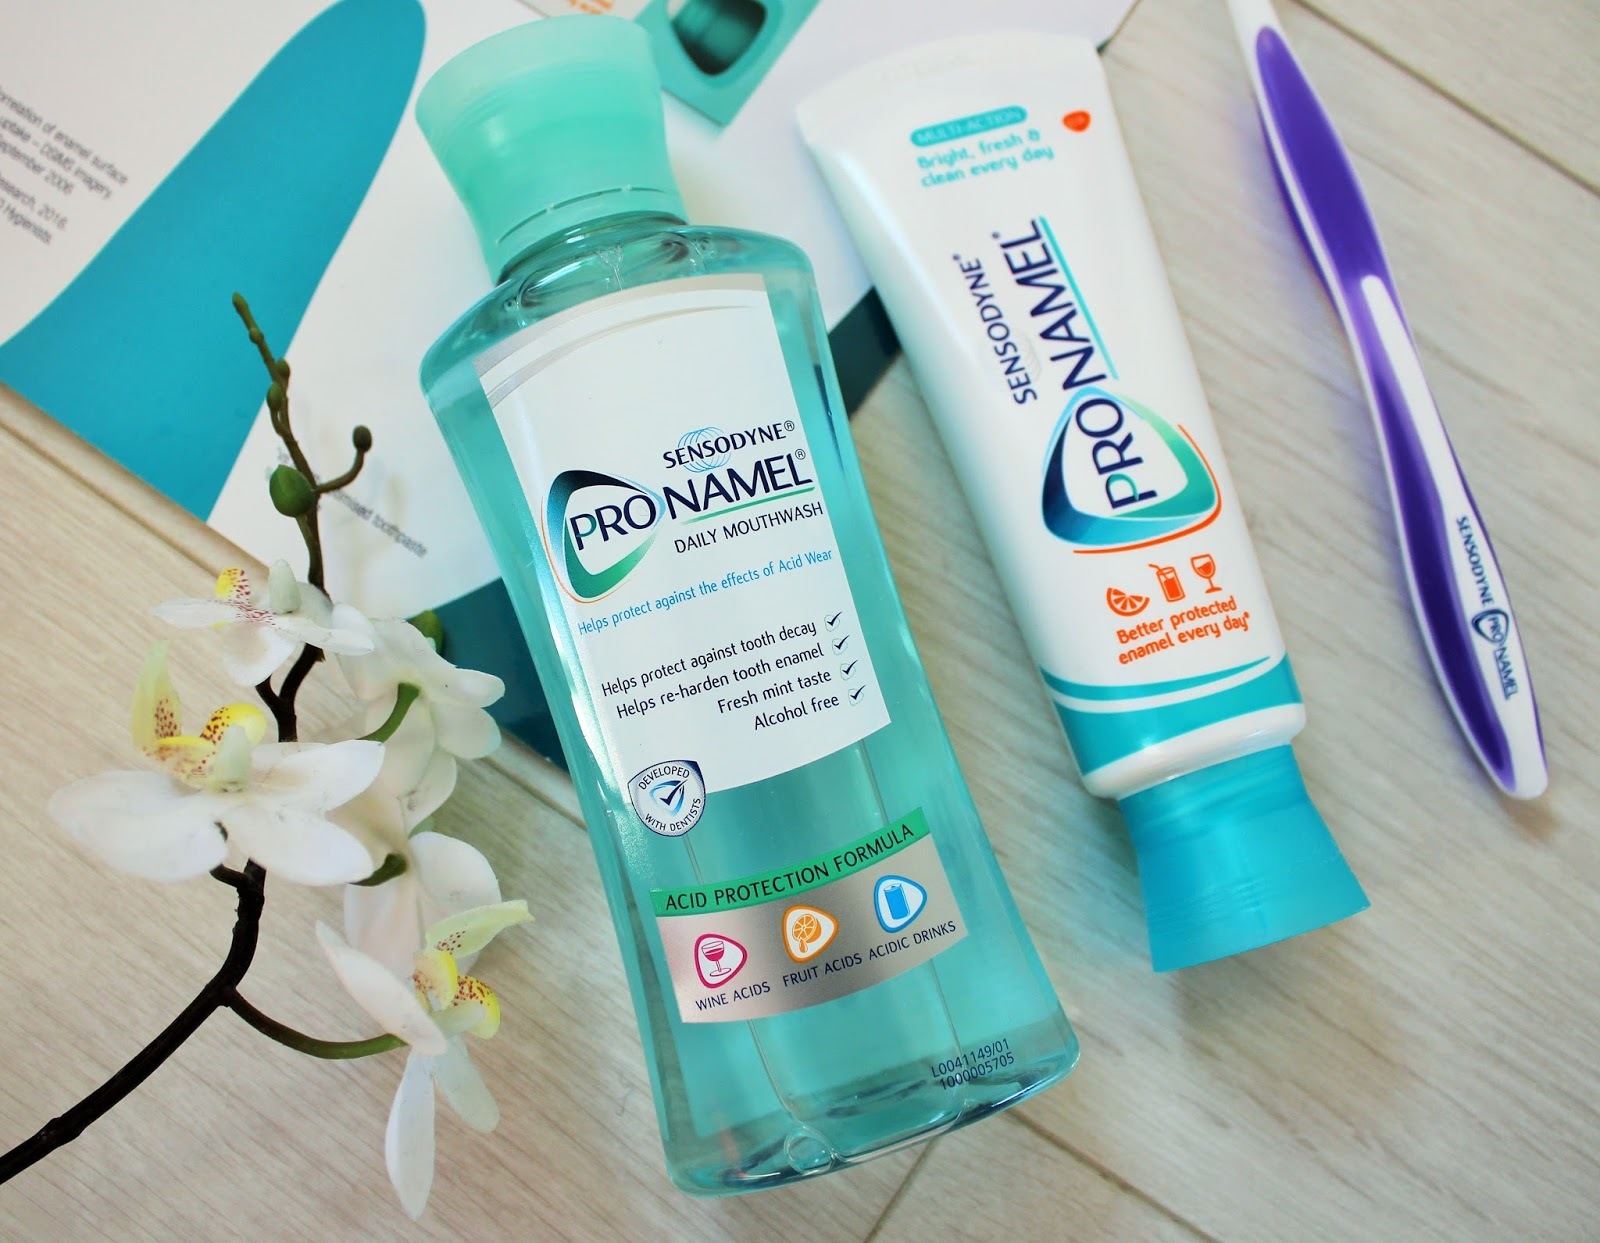 Protect your smile with Sensodyne Pronamel - 4